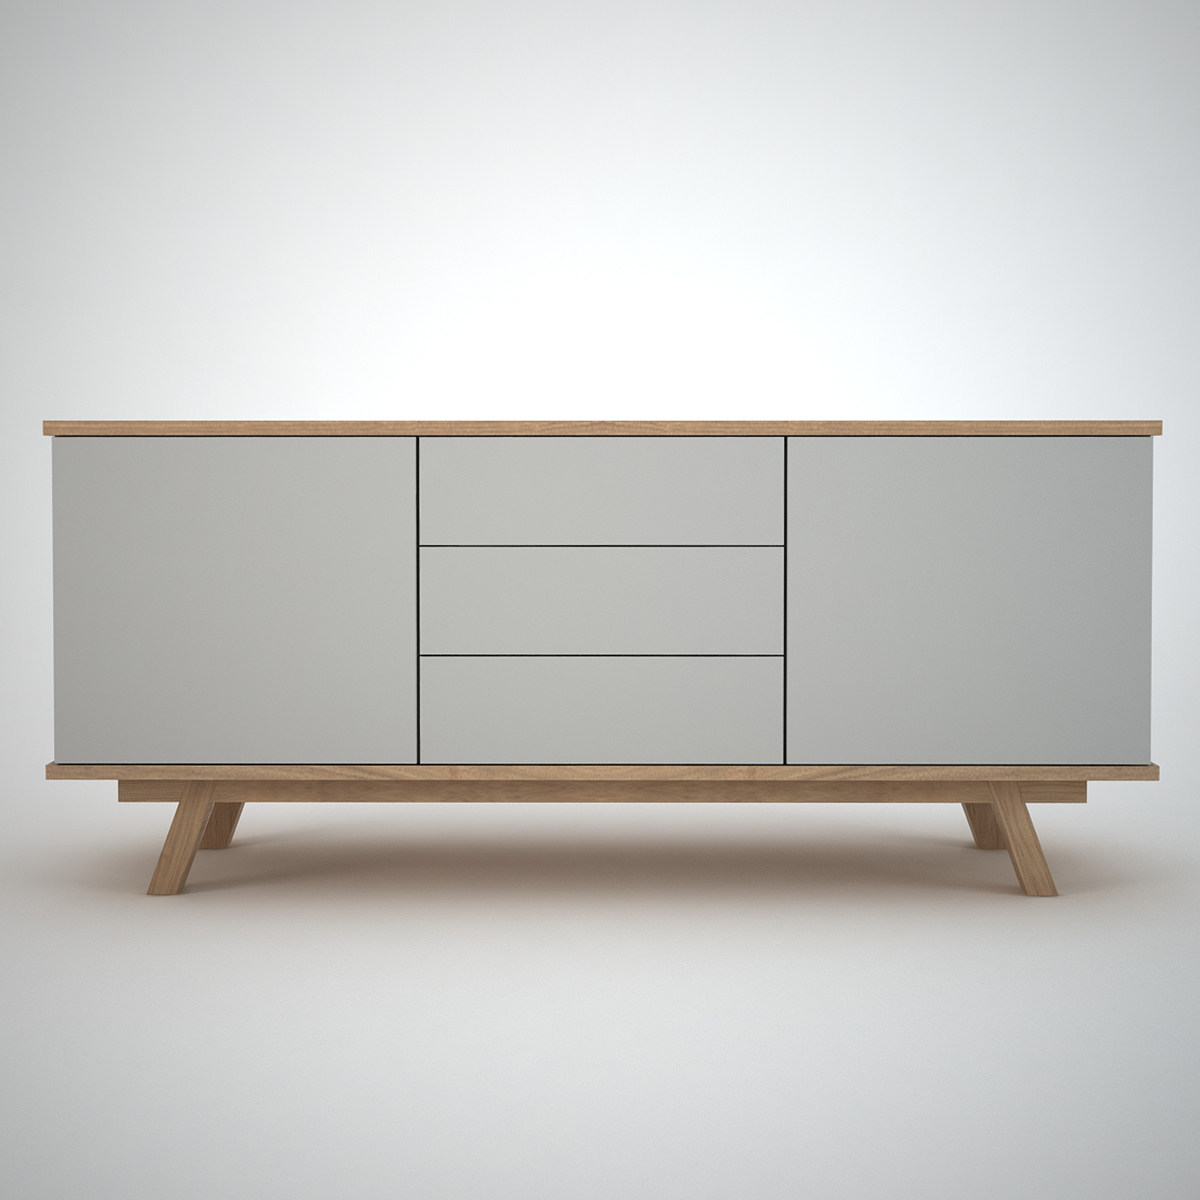 Ottawa sideboard 2 3 clay join furniture for Furniture board